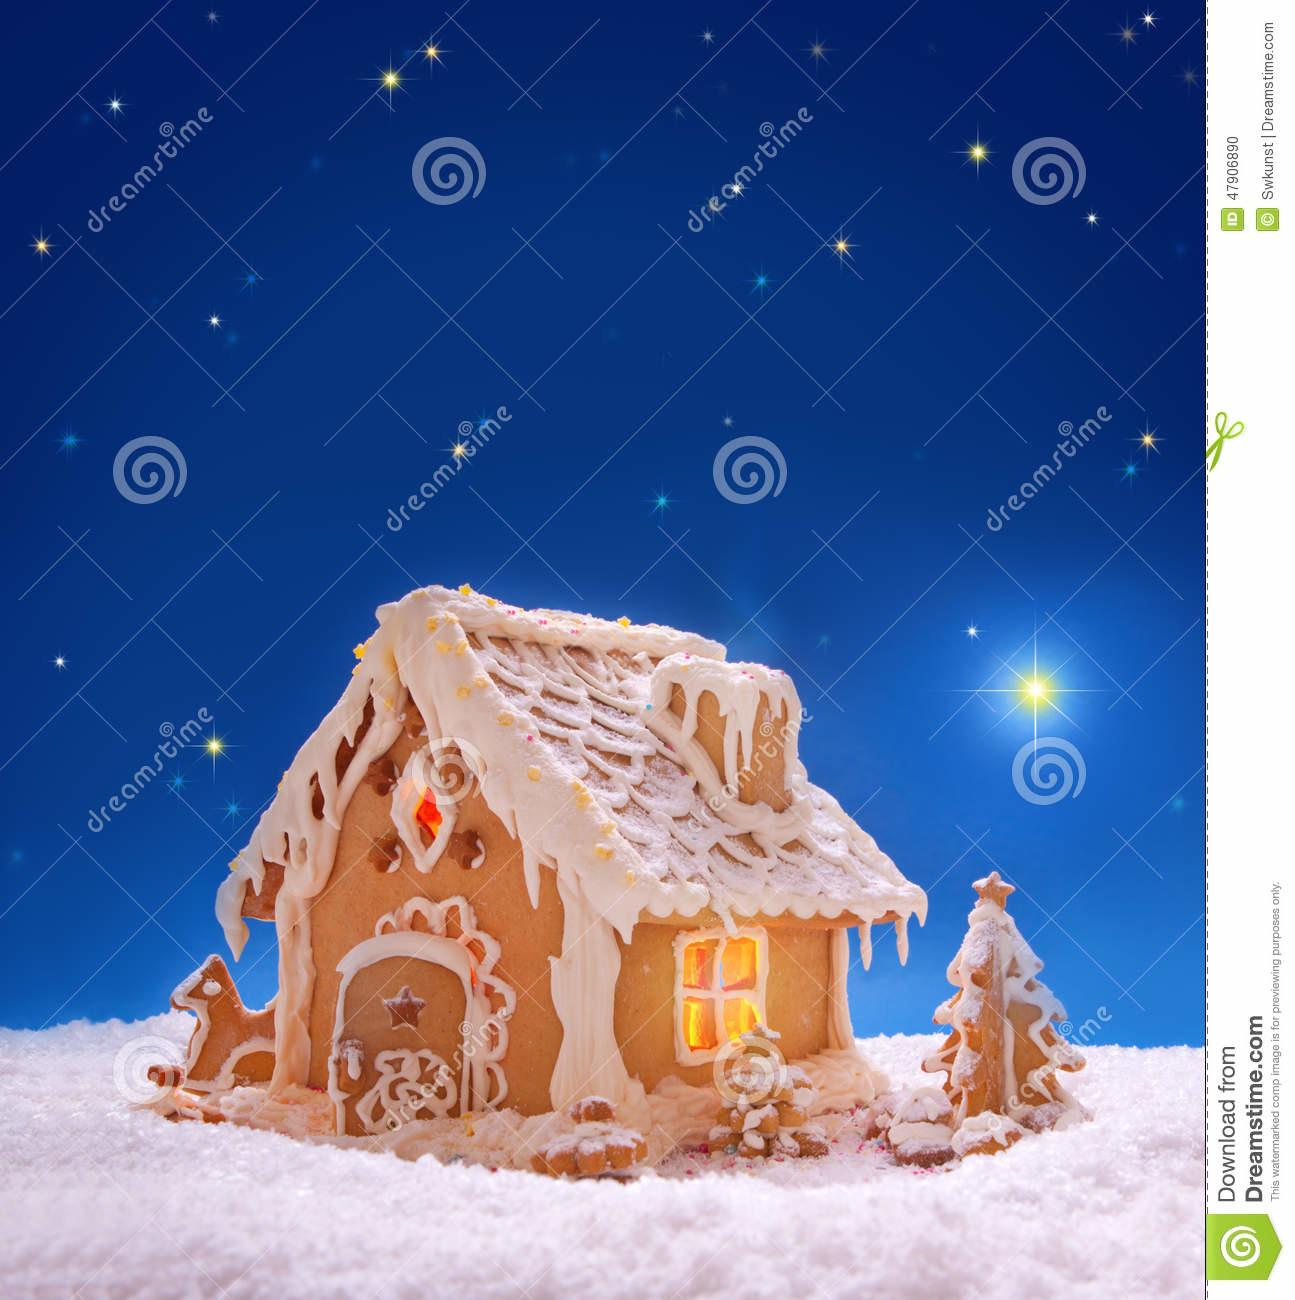 Christmas Card Holiday Gingerbread House Stock